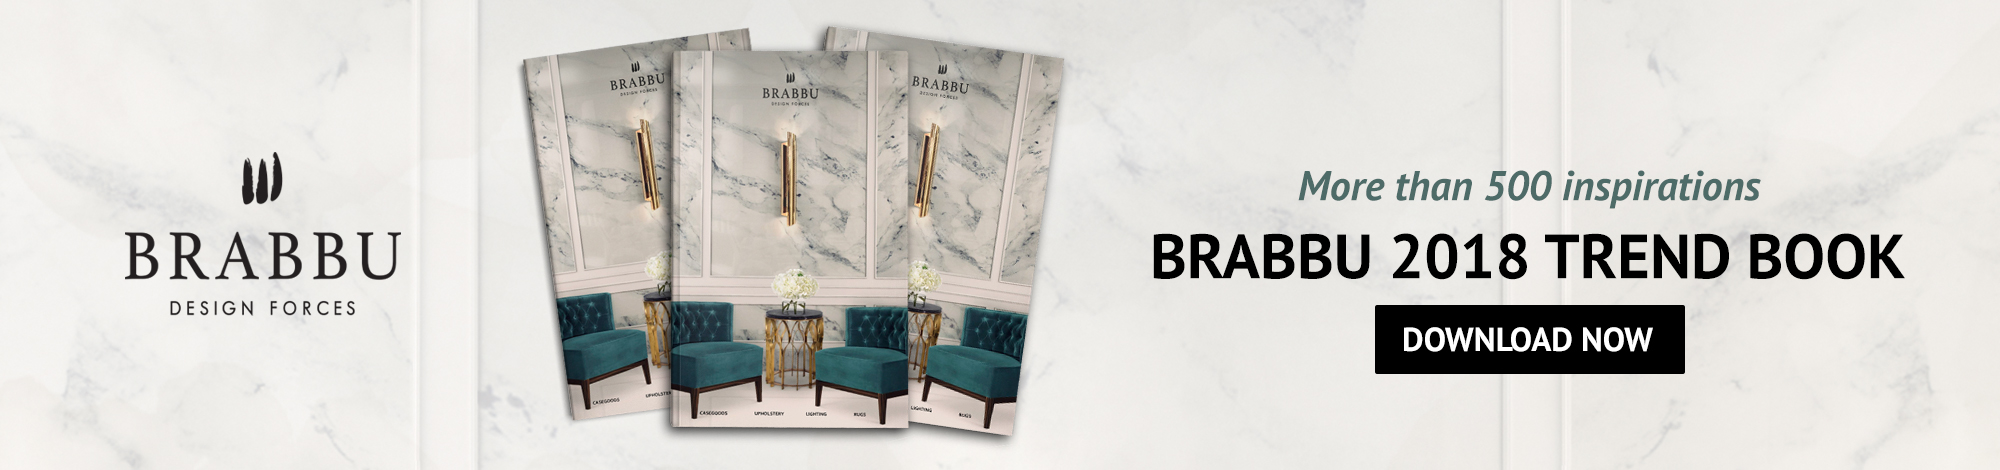 BRABBU Catalogue 2019 color trends Be Inspired By The Ultimate 2019 Color Trends!  1C5EB82328DCFD5BD10428DB124BD945082C079483CACCDD2D pimgpsh fullsize distr